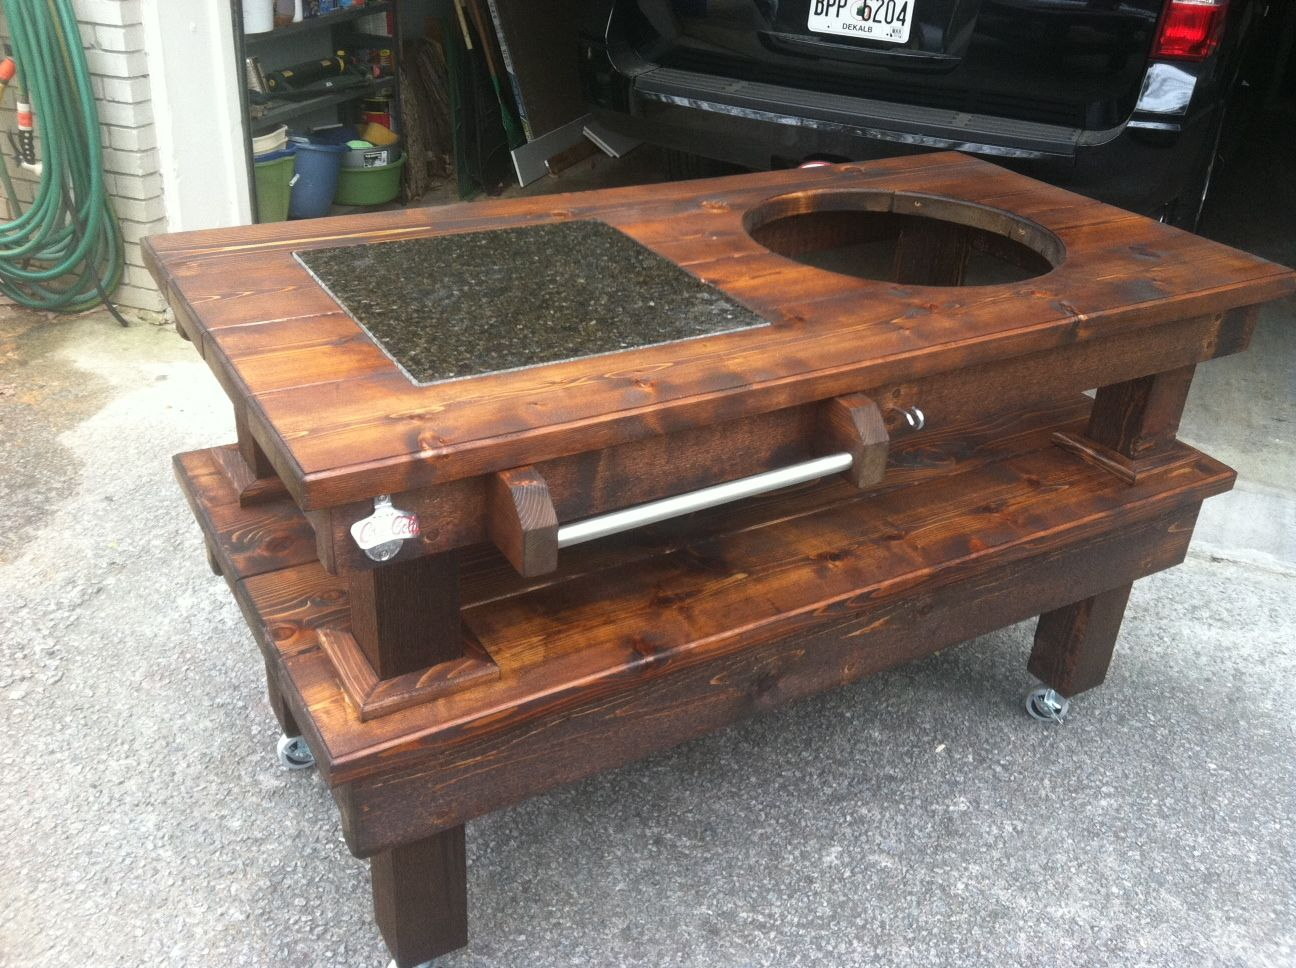 Pin By Lou On Project Bge Uber Table Big Green Egg Table Big Green Egg Outdoor Kitchen Big Green Egg Table Plans